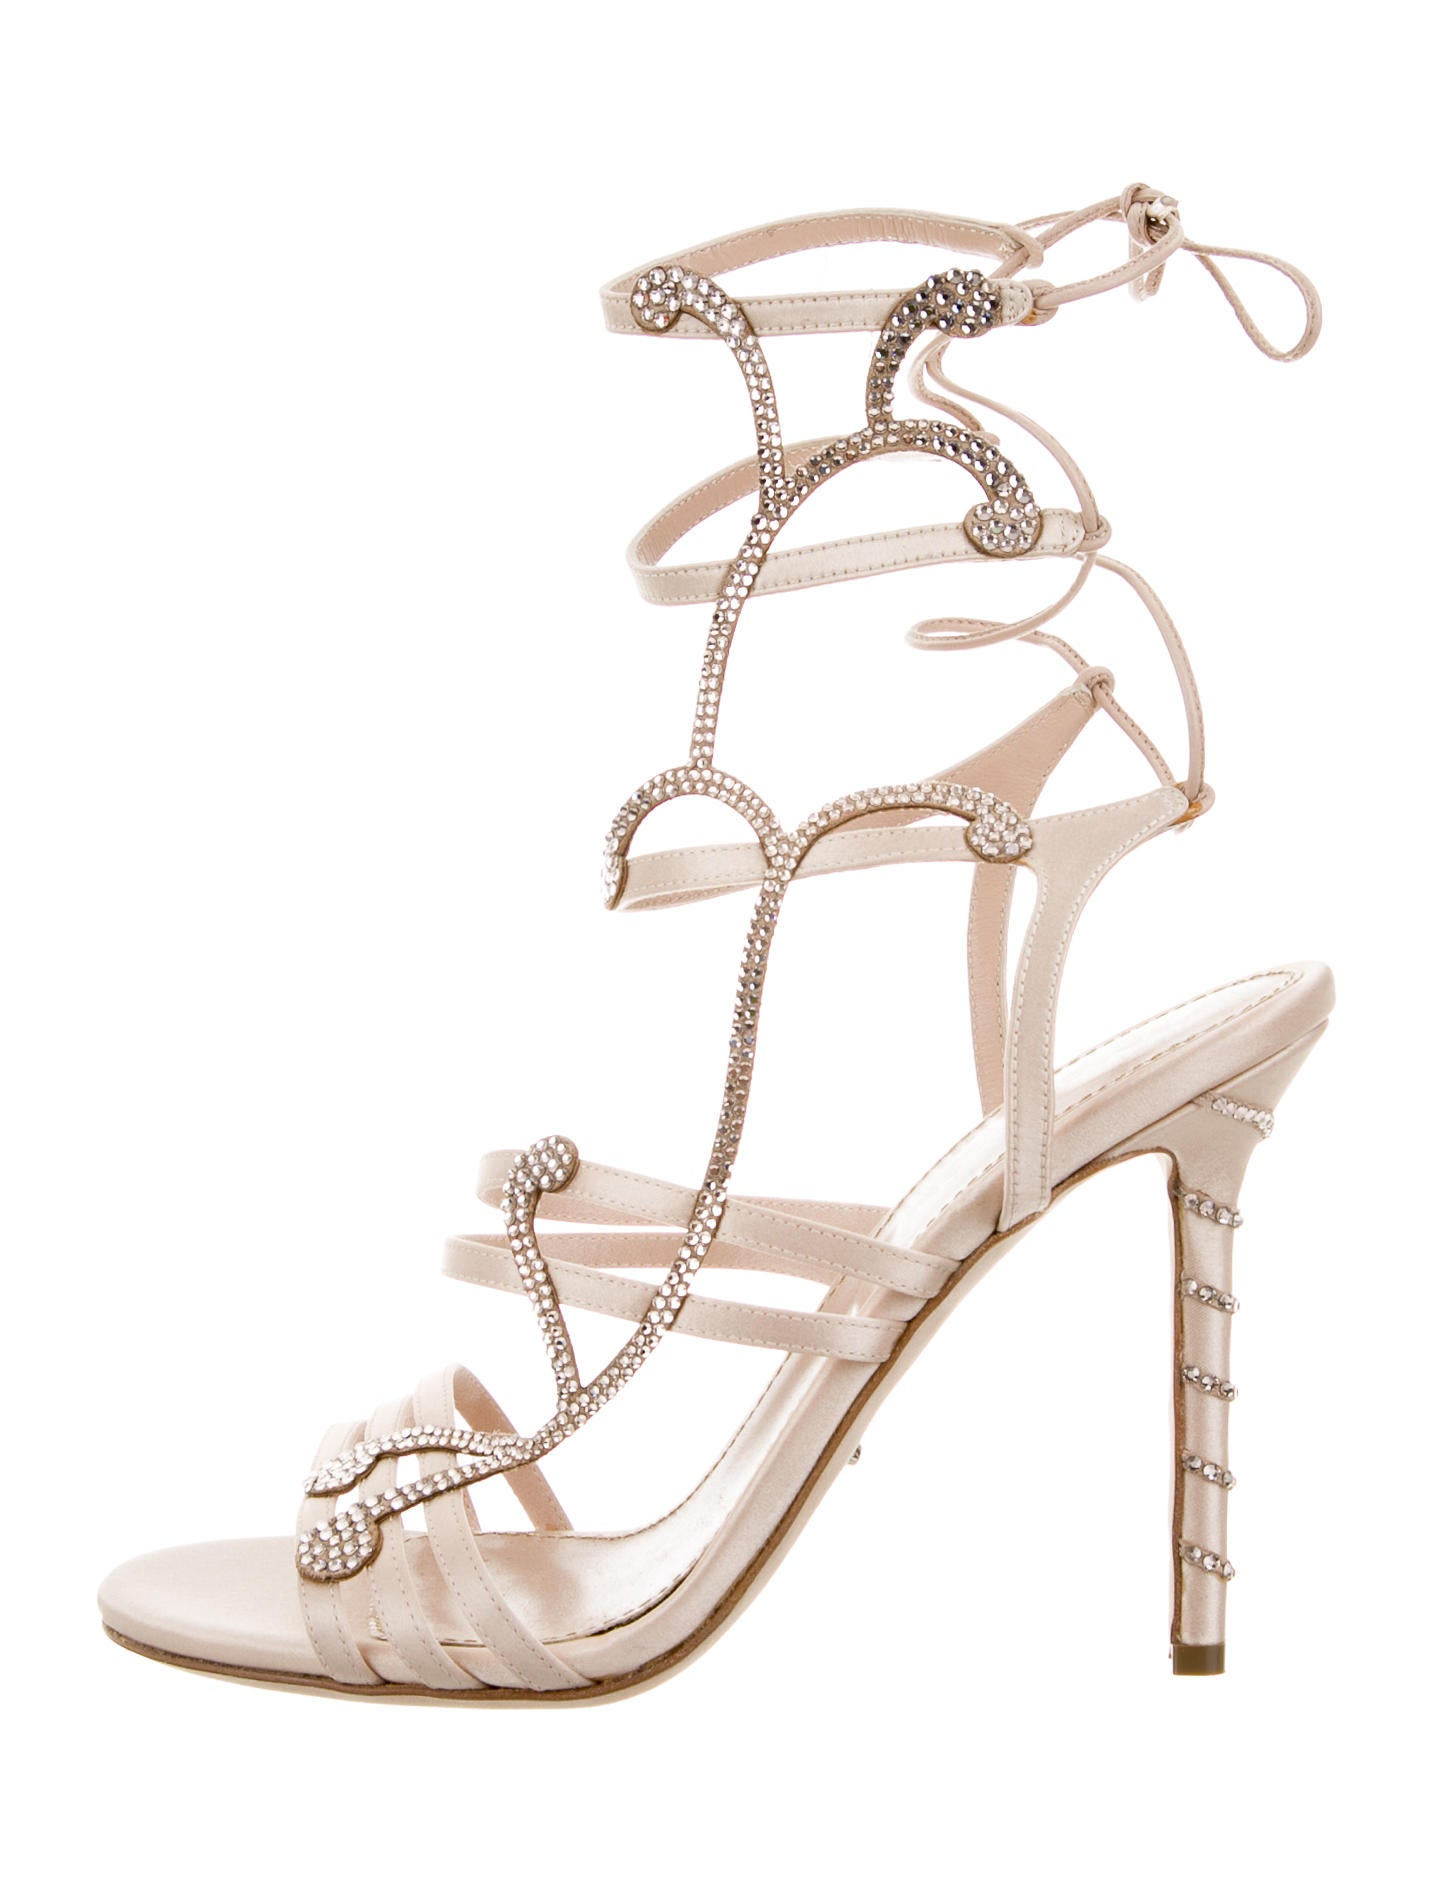 buy cheap amazing price Sergio Rossi Embellished Lace-Up Sandals clearance the cheapest V6lgobc